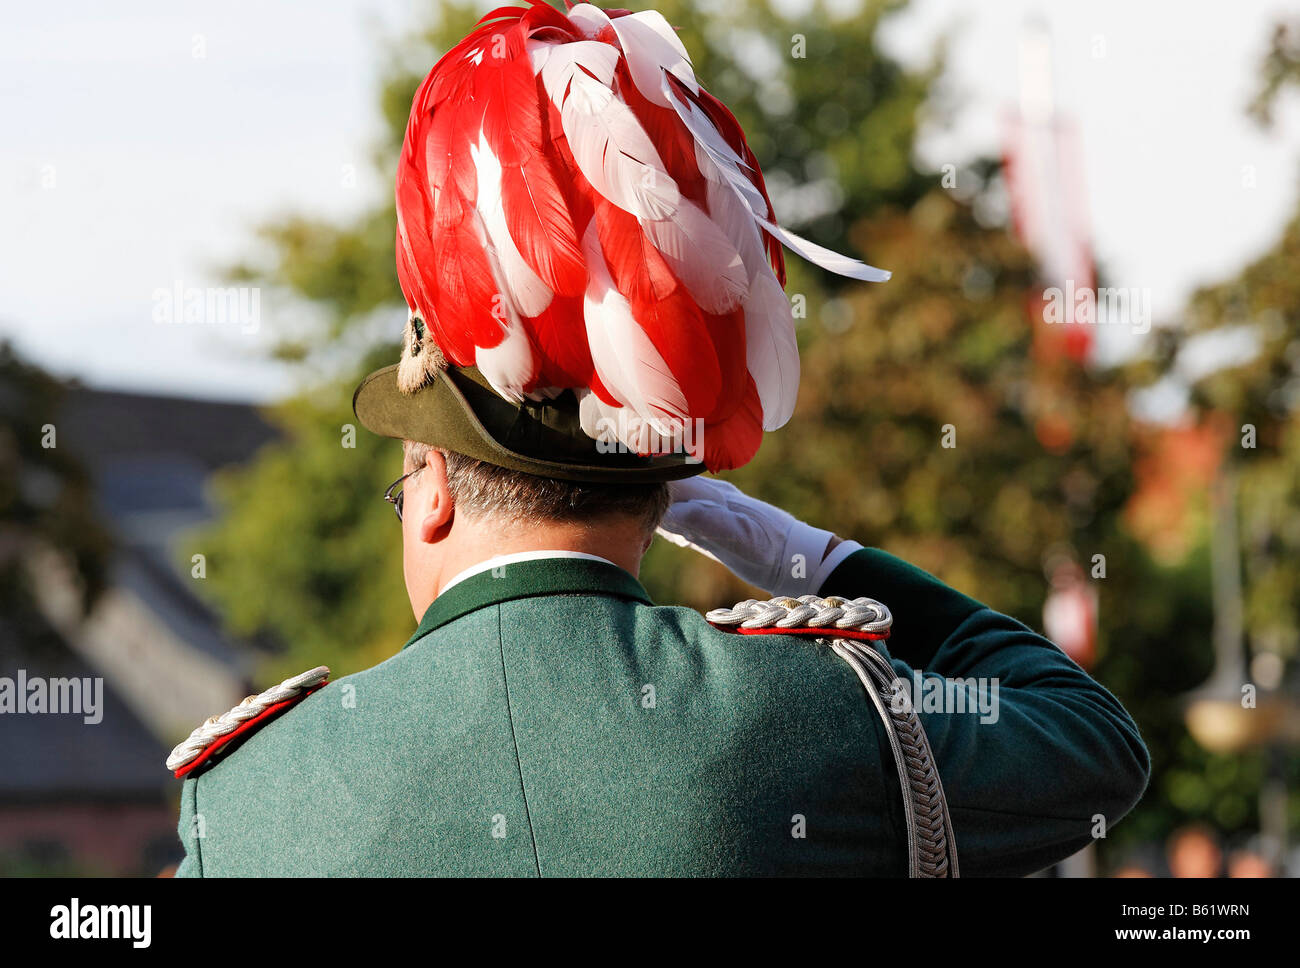 Gunman in uniform with a red and white feather hat, saluting, back-view, Schuetzenumzug in Xanten, Lower Rhine region, - Stock Image